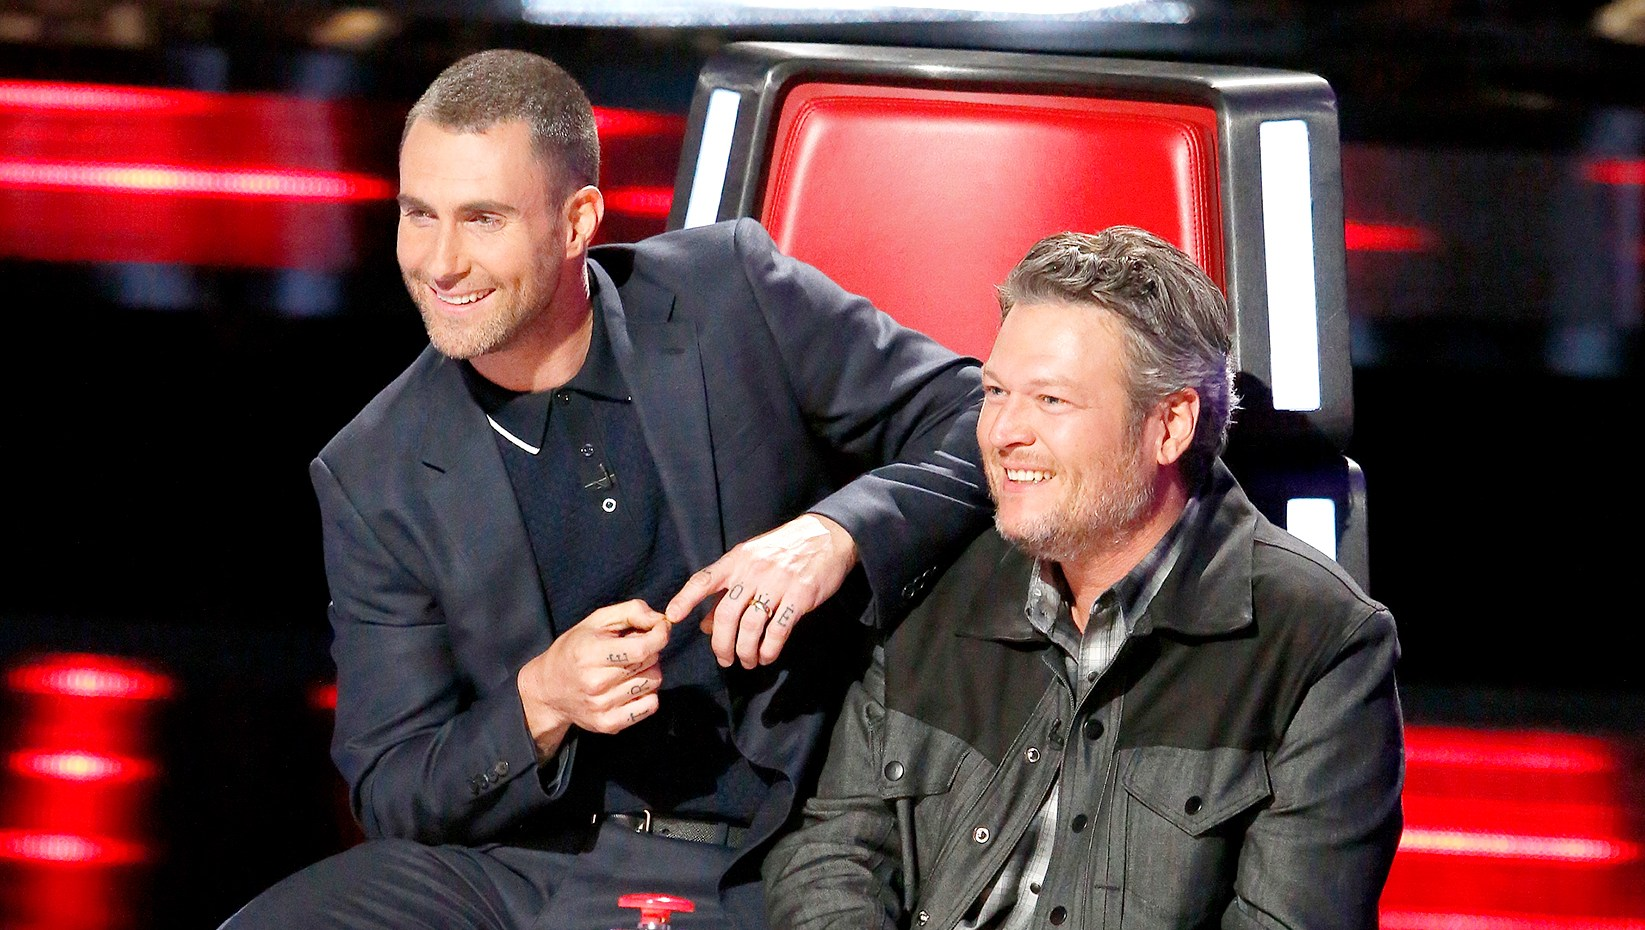 Adam Levine and Blake Shelton on The Voice